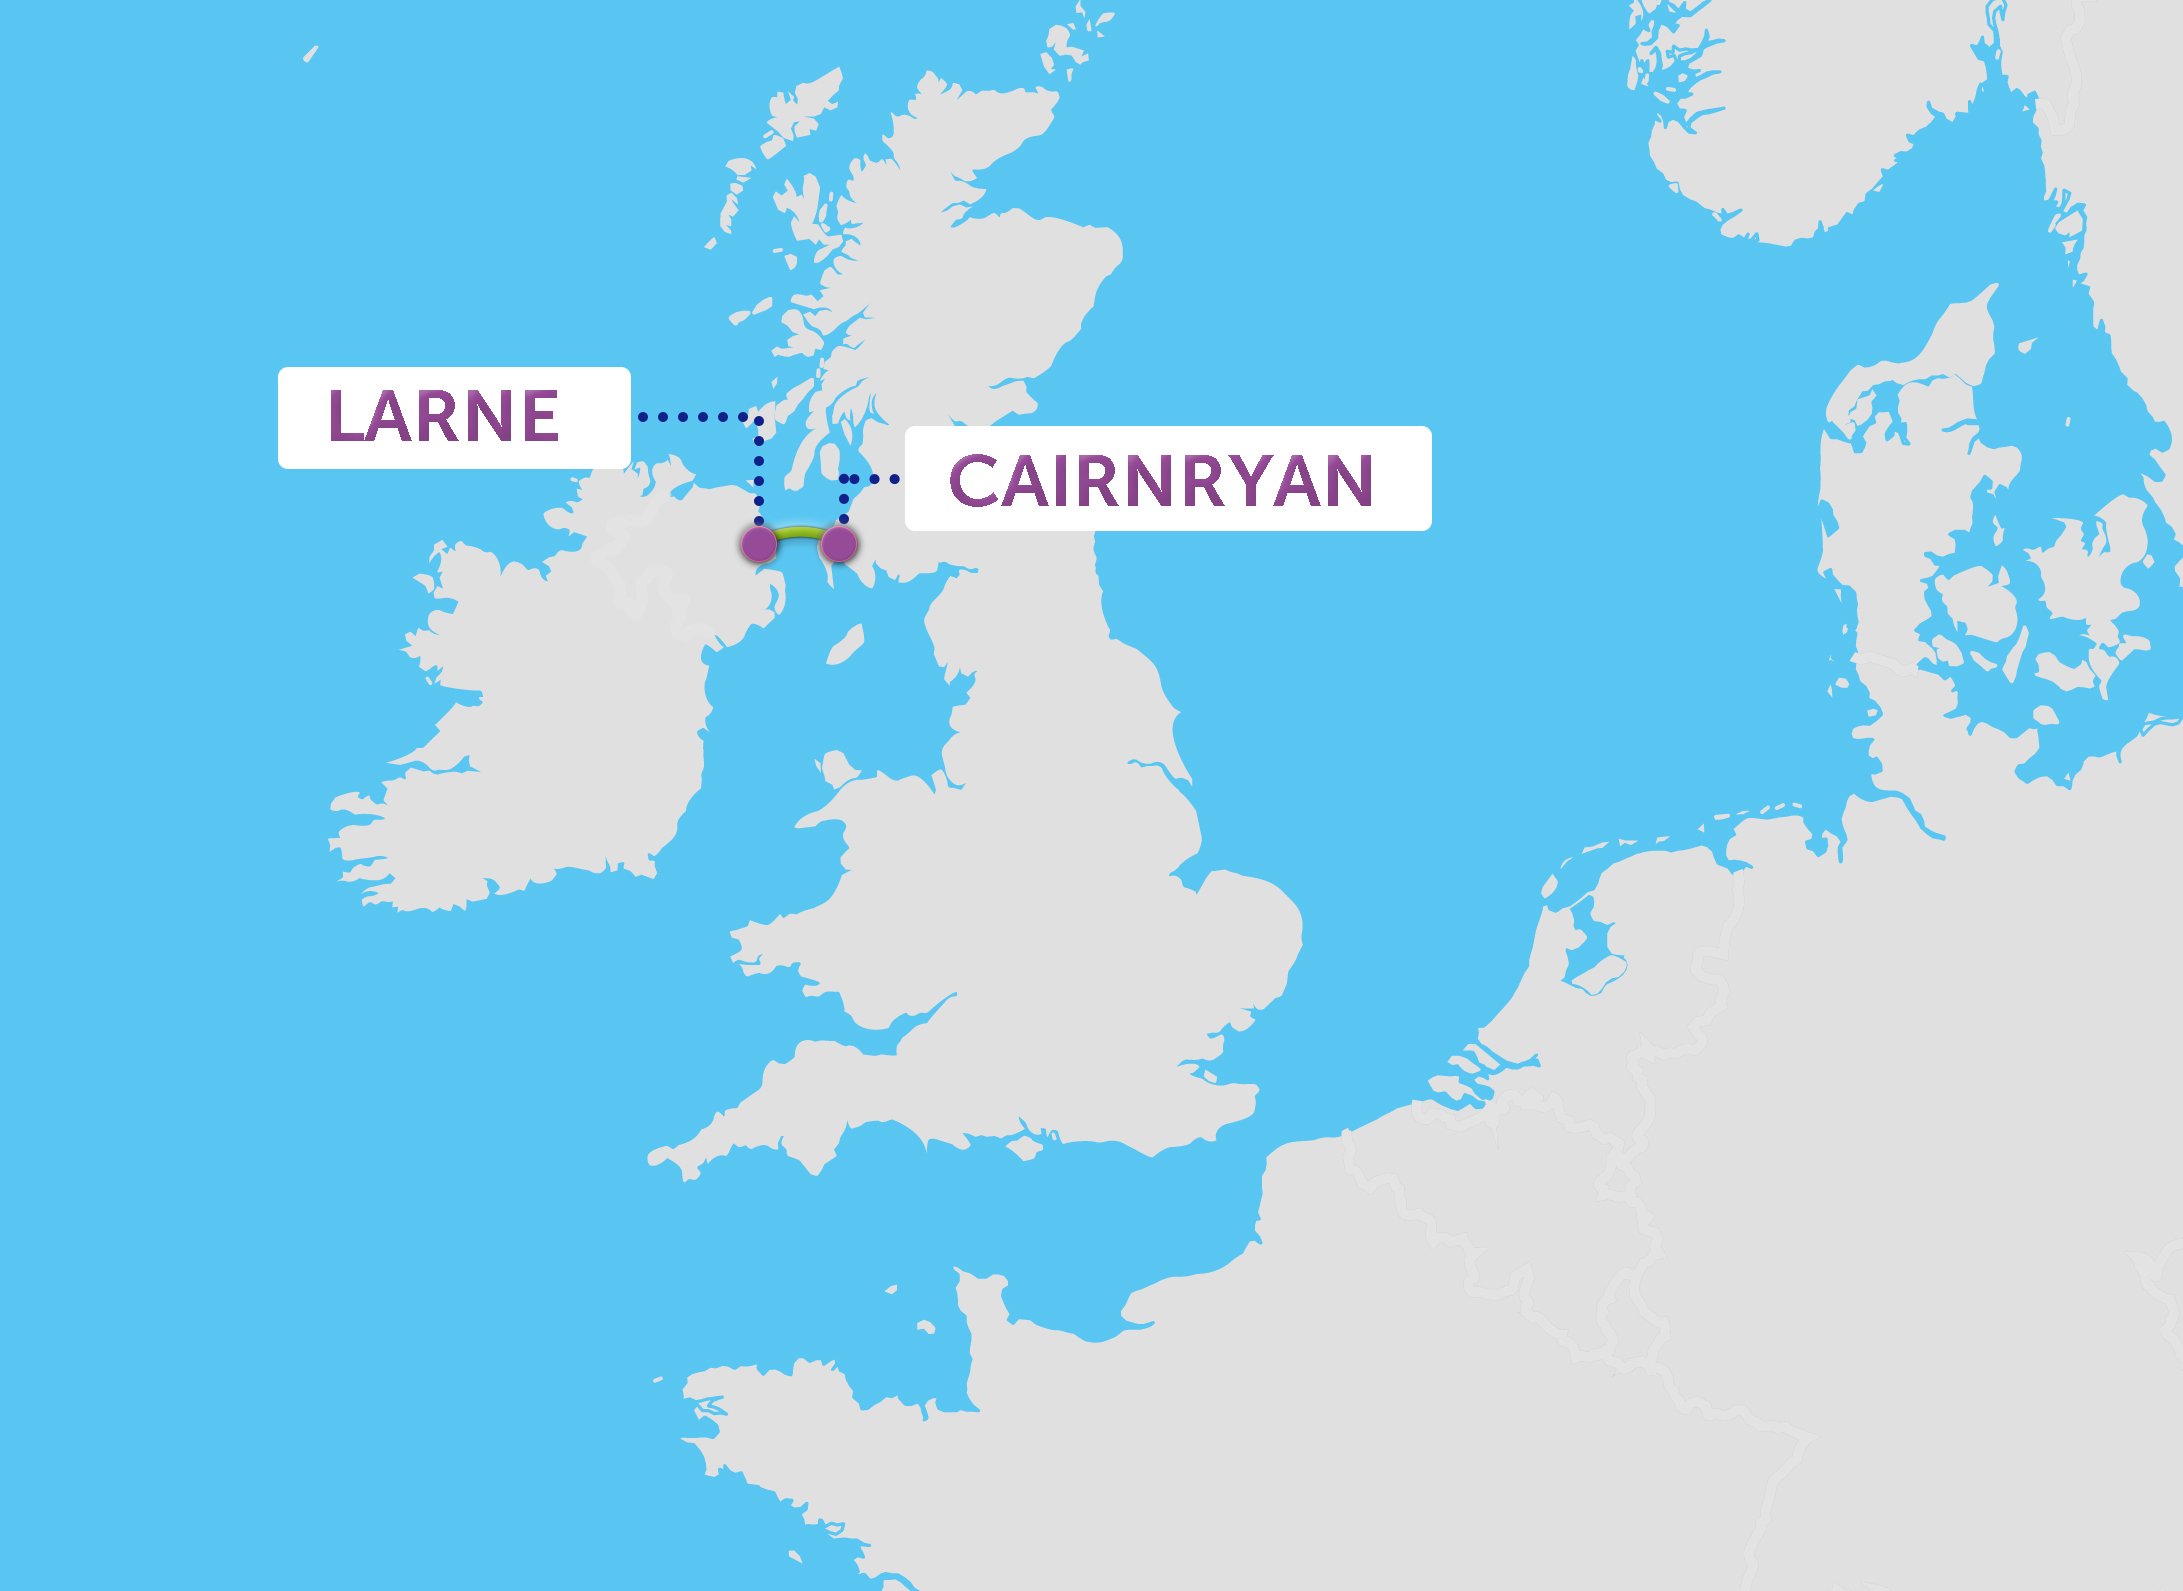 P&O Ferries Cairnryan to Larne route